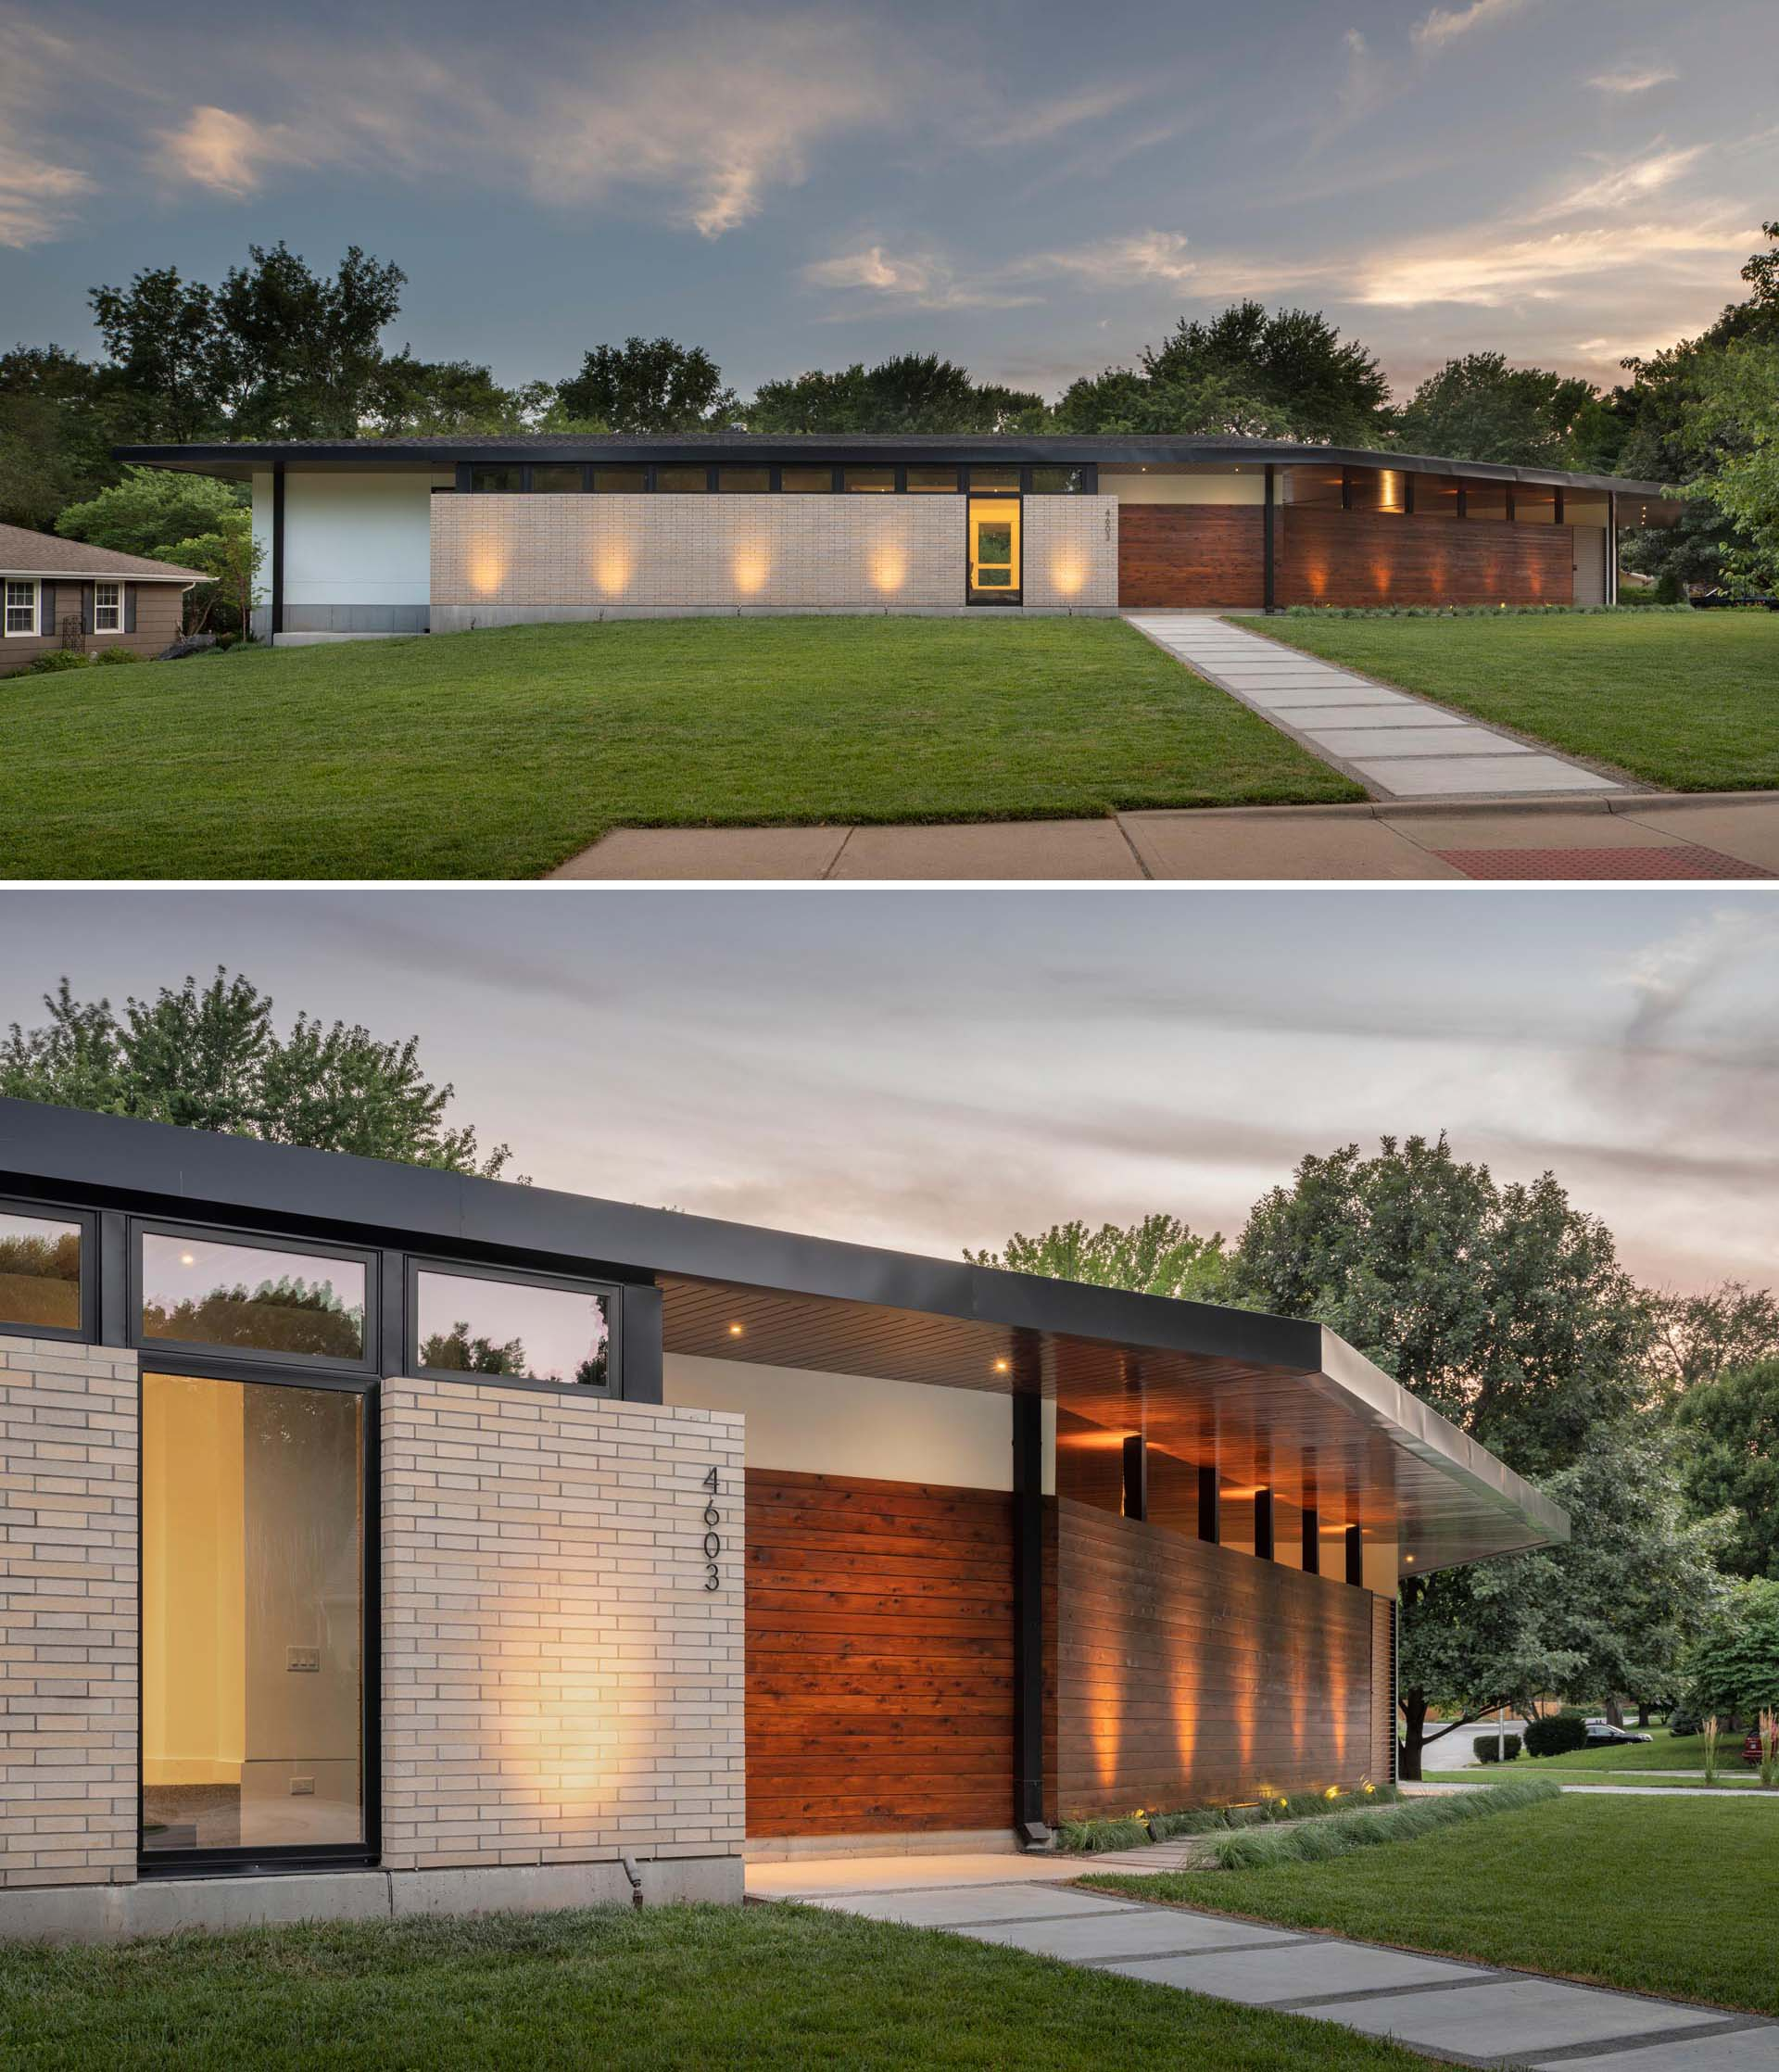 The exterior of a mid-century modern inspired house features materials like light buff brick, white stucco, and exposed concrete, all of which are accented by stained cedar, and highlighted by accent lighting at night.